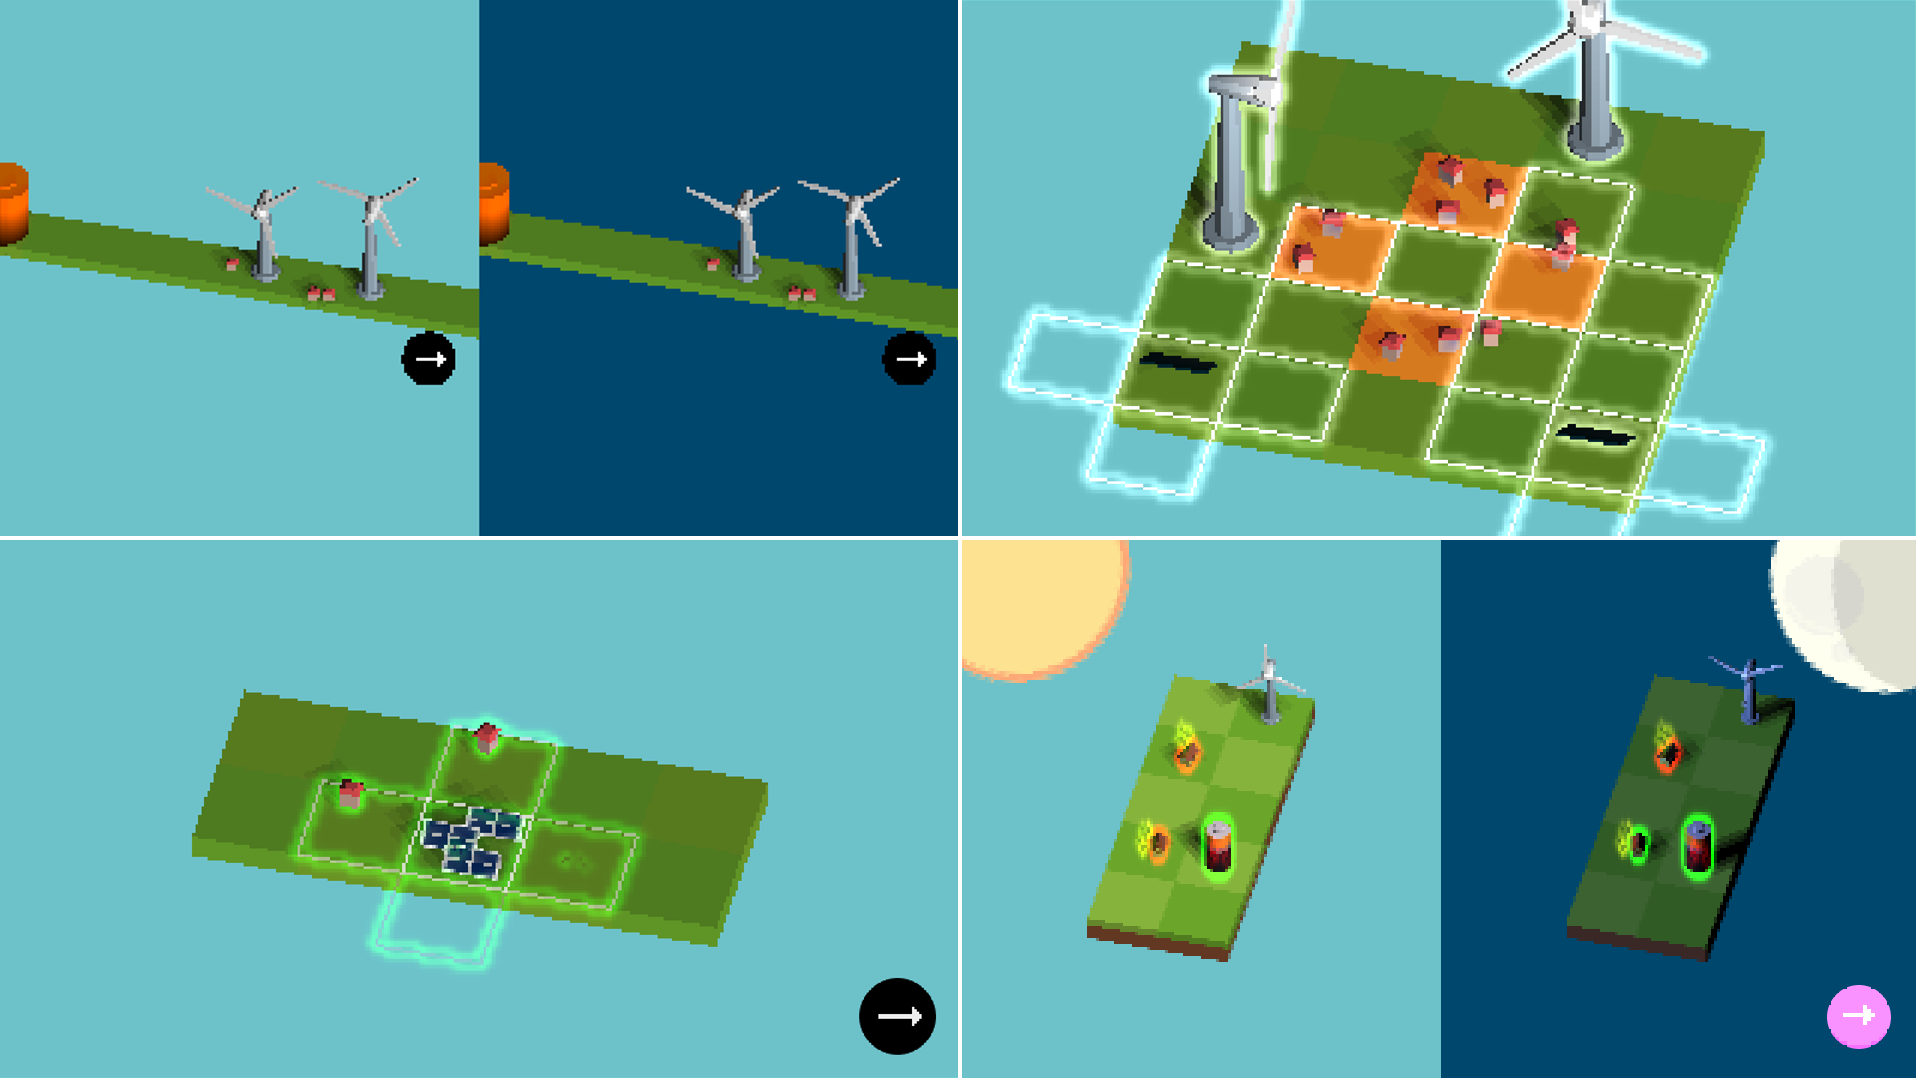 second collage of several iterations of the game visuals